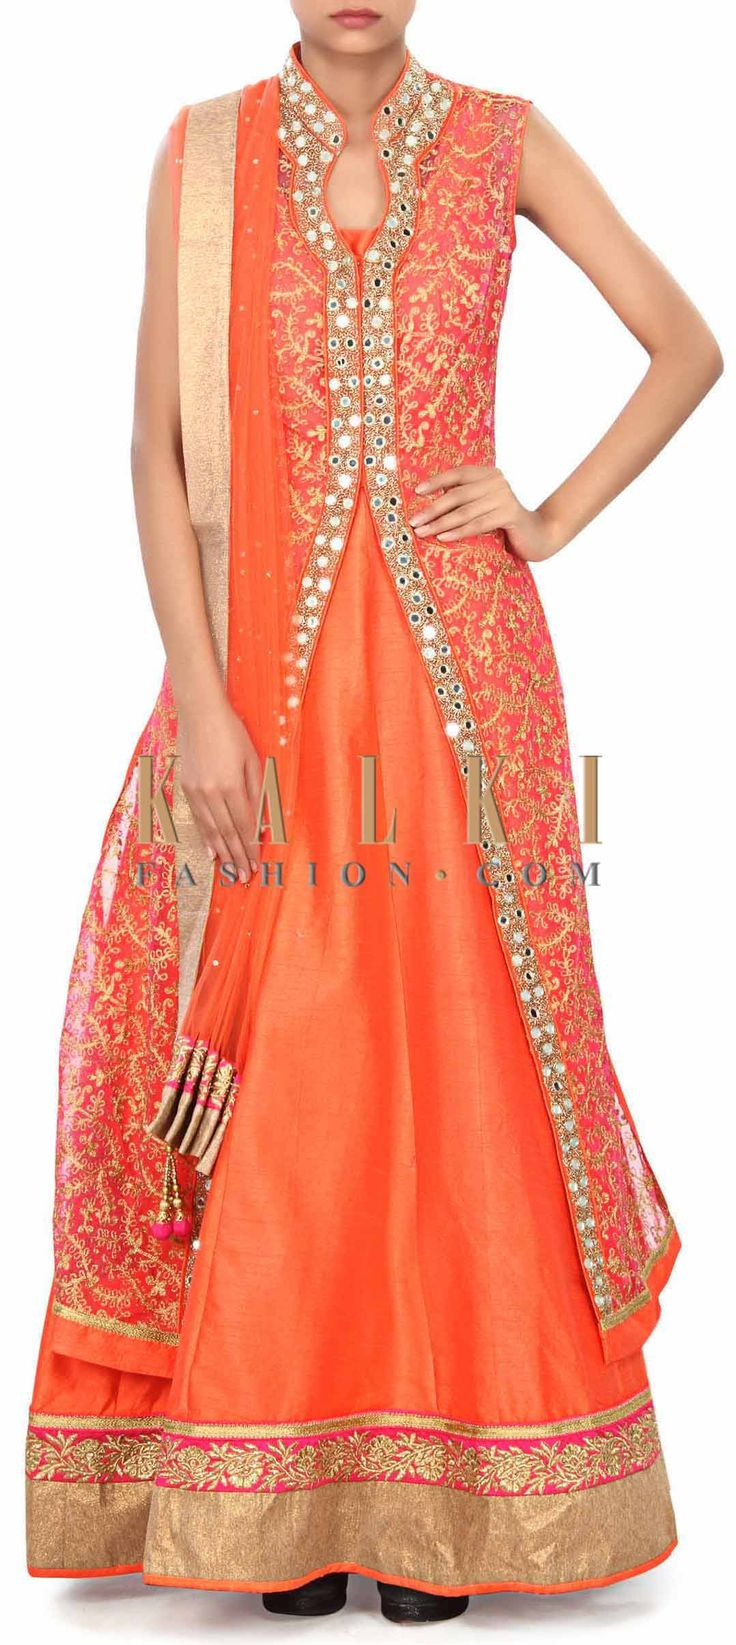 Buy Online from the link below. We ship worldwide (Free Shipping over US$100) Price- $279 Click Anywhere to Tag http://www.kalkifashion.com/dark-peach-anarkali-suit-with-jacket-enhanced-in-aari-work-only-on-kalki.html